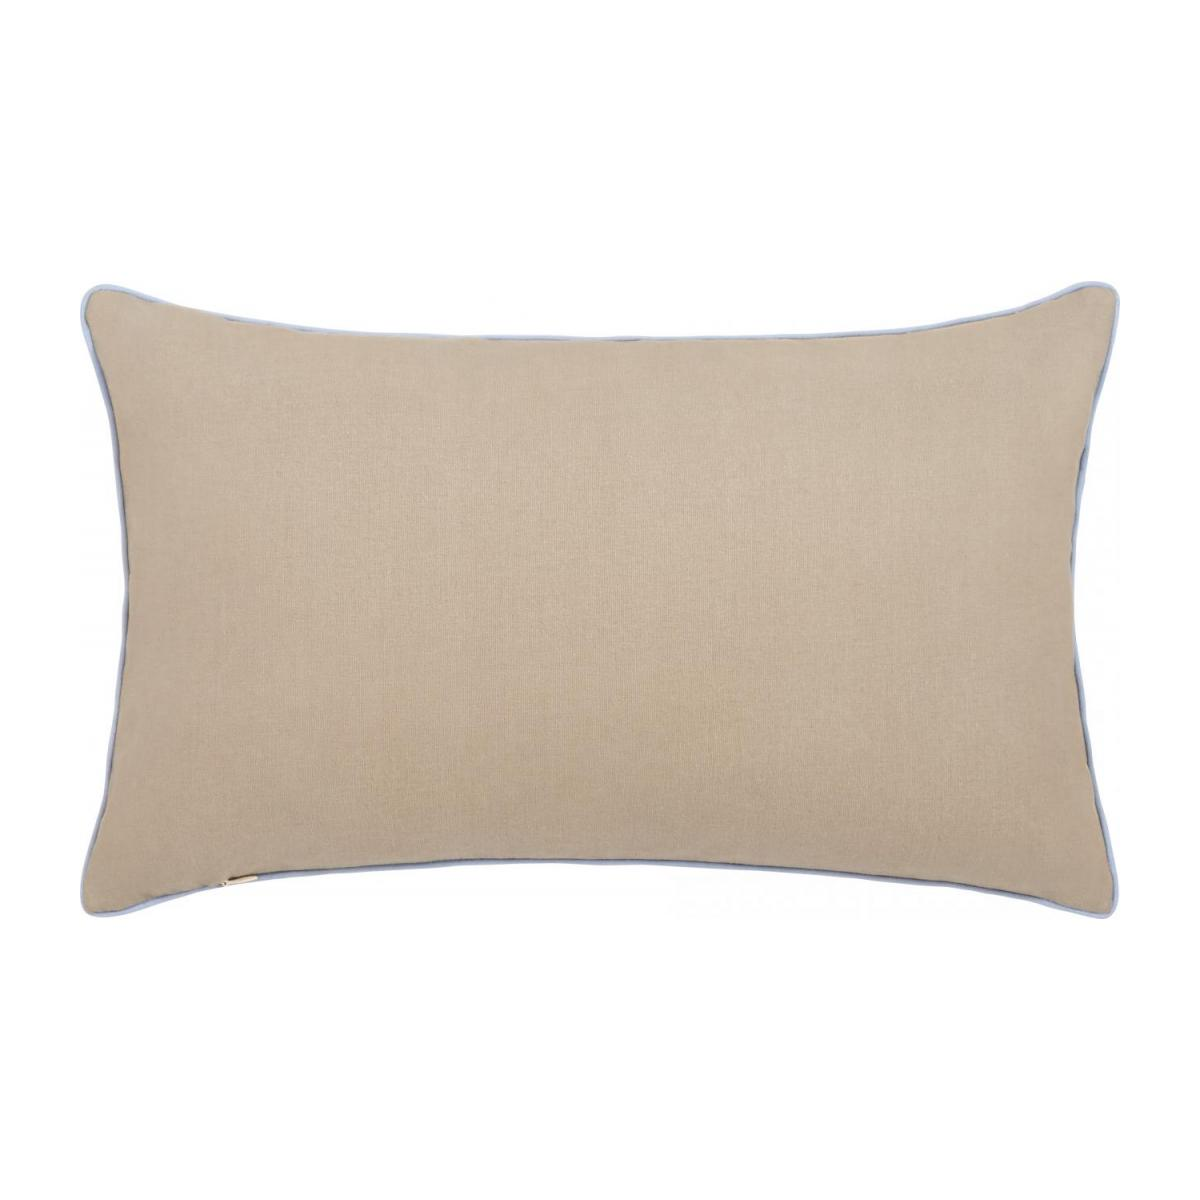 Embroidered jacquard cushion made of cotton 30x50cm n°3